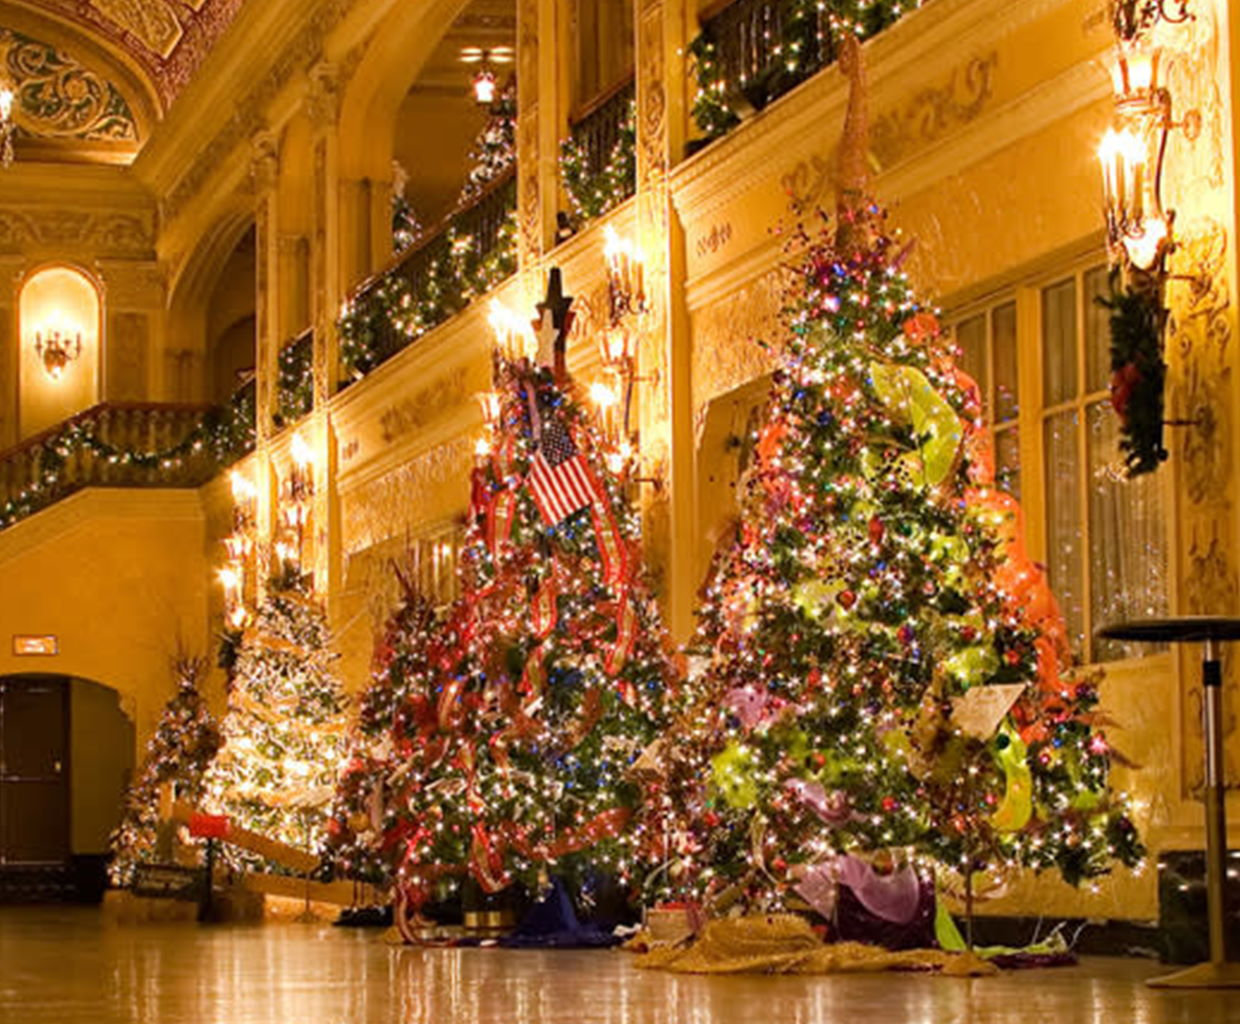 Festival of Trees at the Embassy Theatre in Fort Wayne